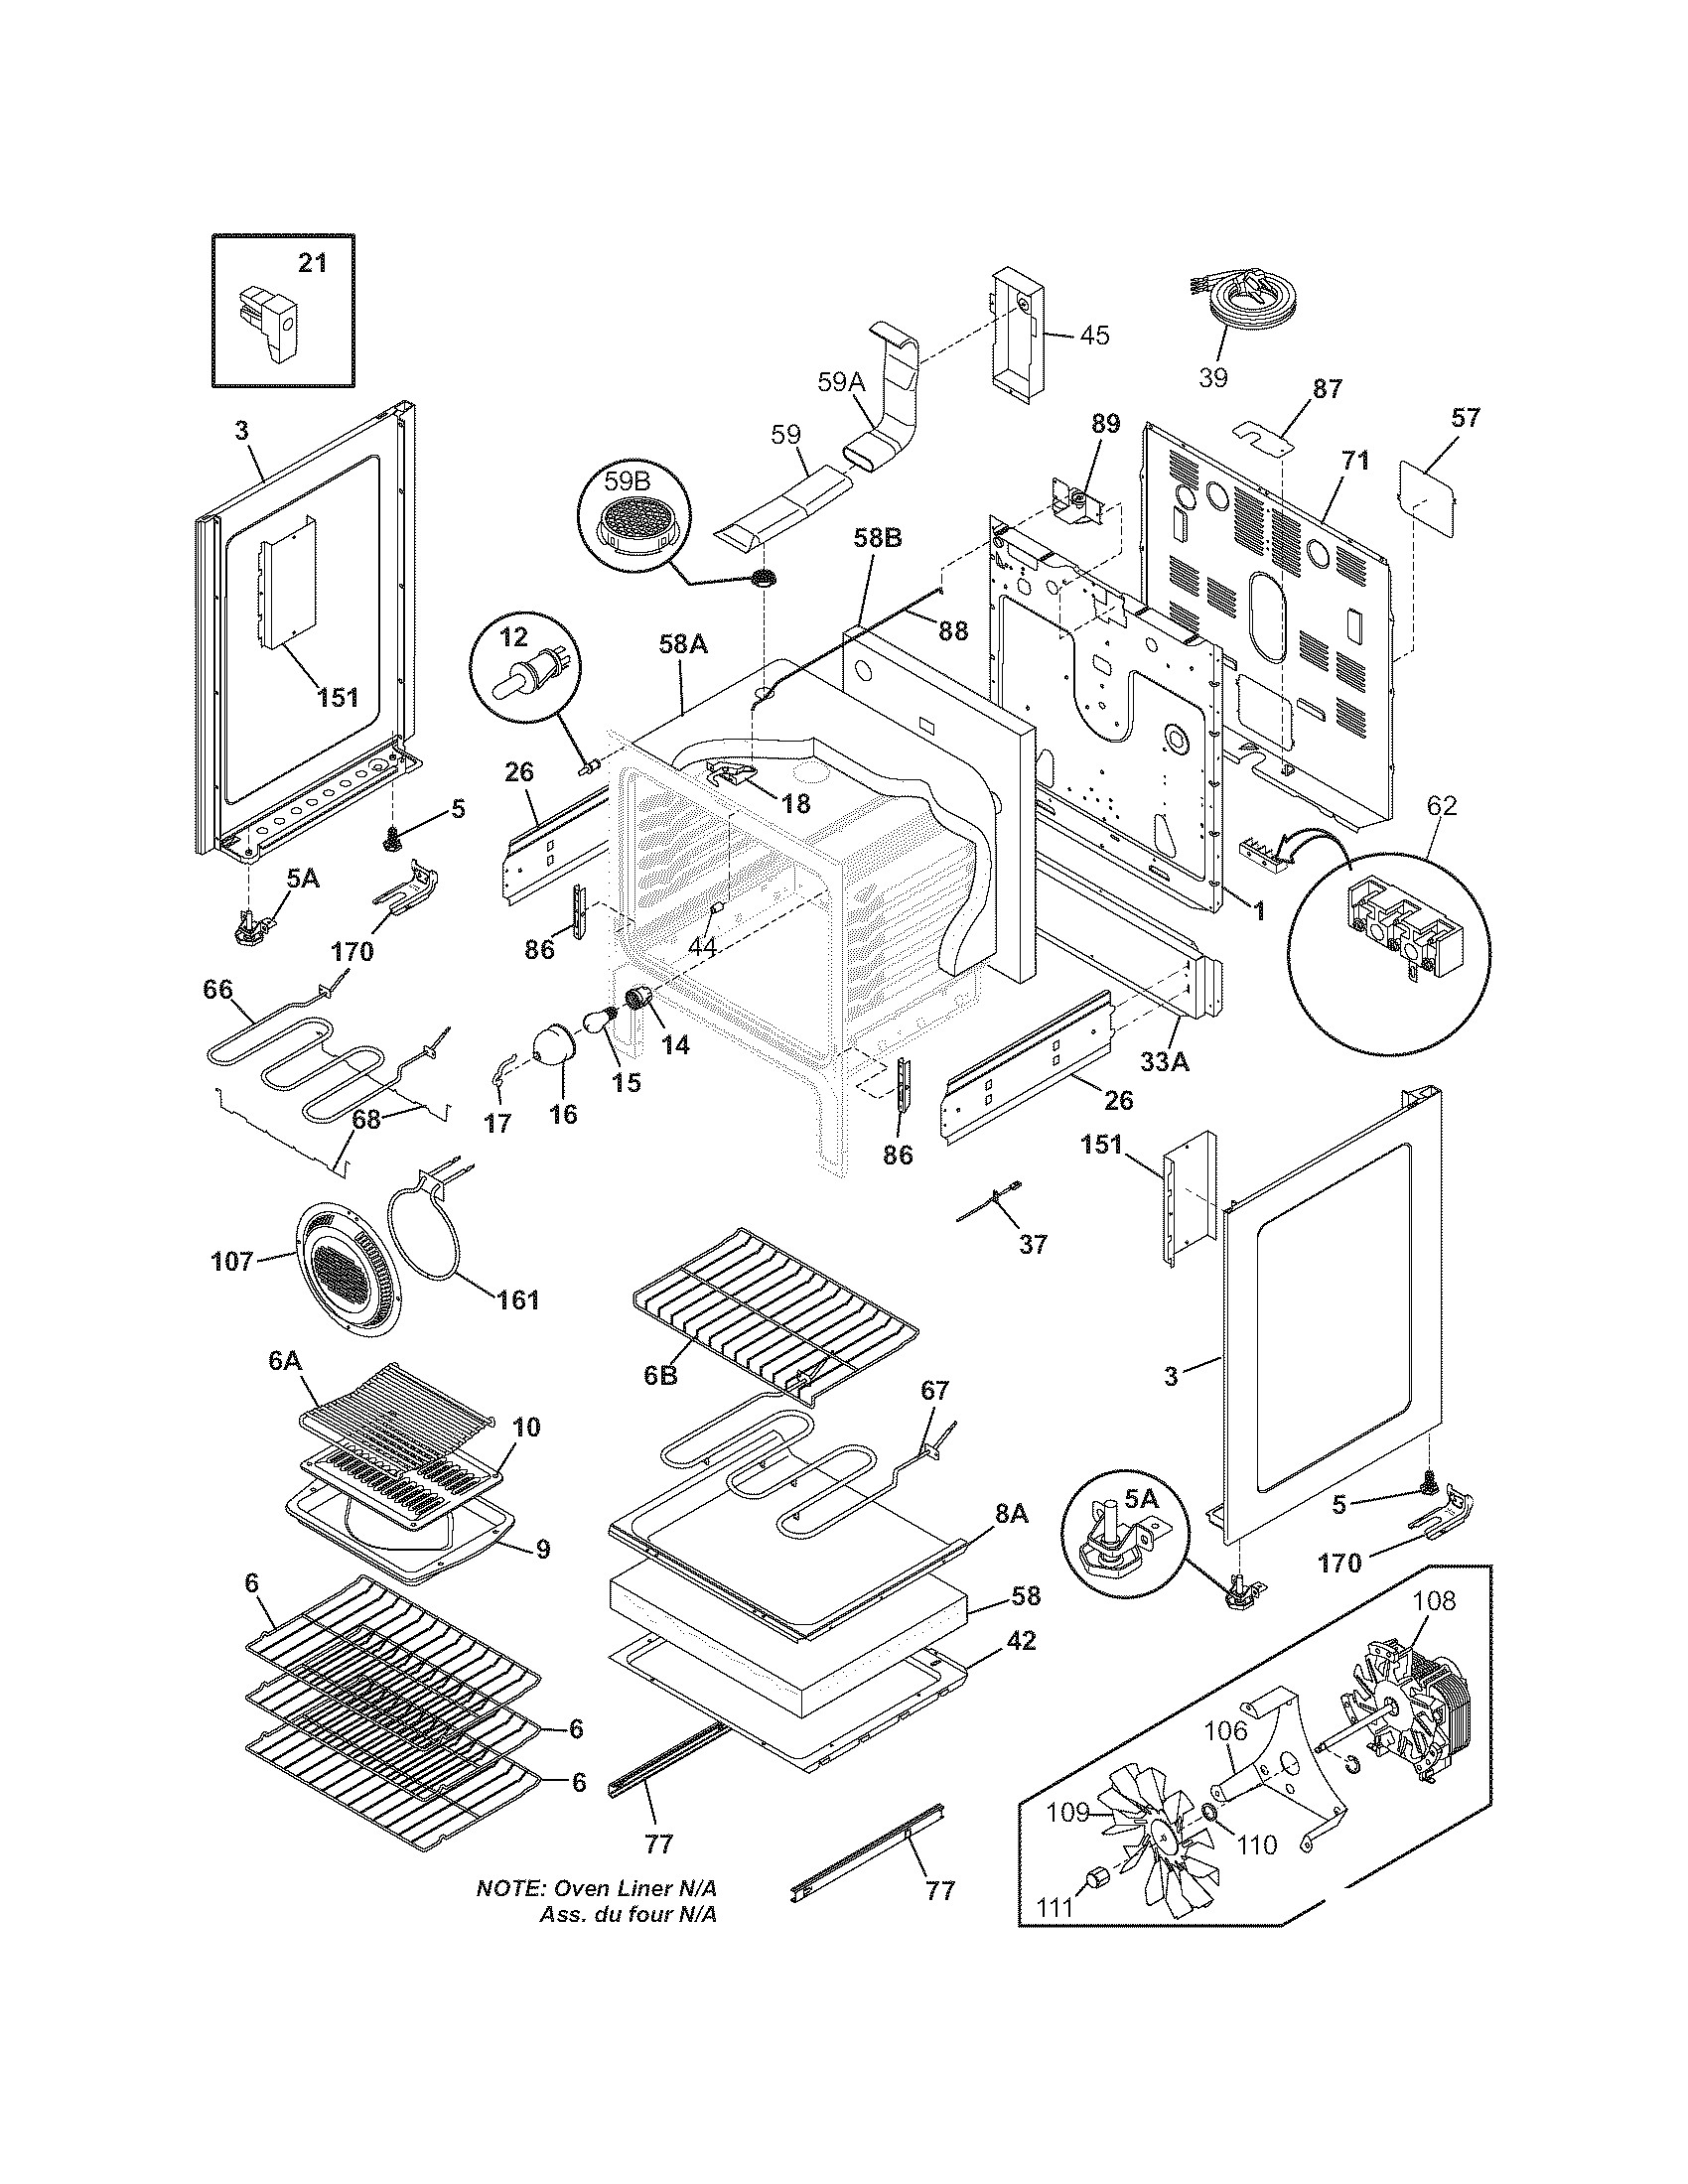 Frigidaire Dishwasher Parts Diagram Stunning Frigidaire Wiring Diagram Gallery Everything You Need to Of Frigidaire Dishwasher Parts Diagram